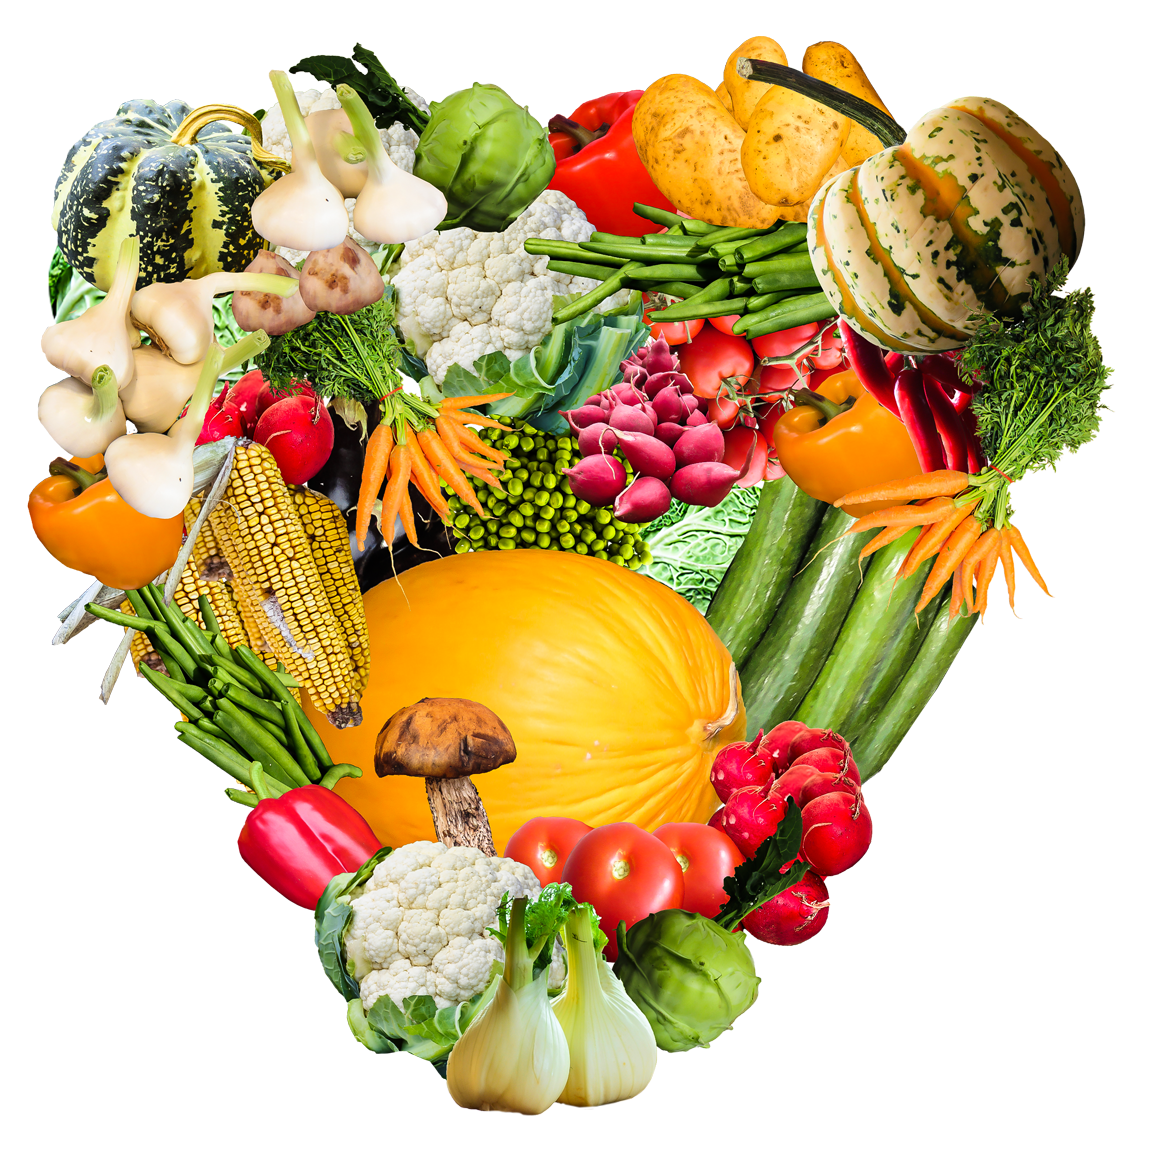 heart vegetables png transparent image pngpix #15396